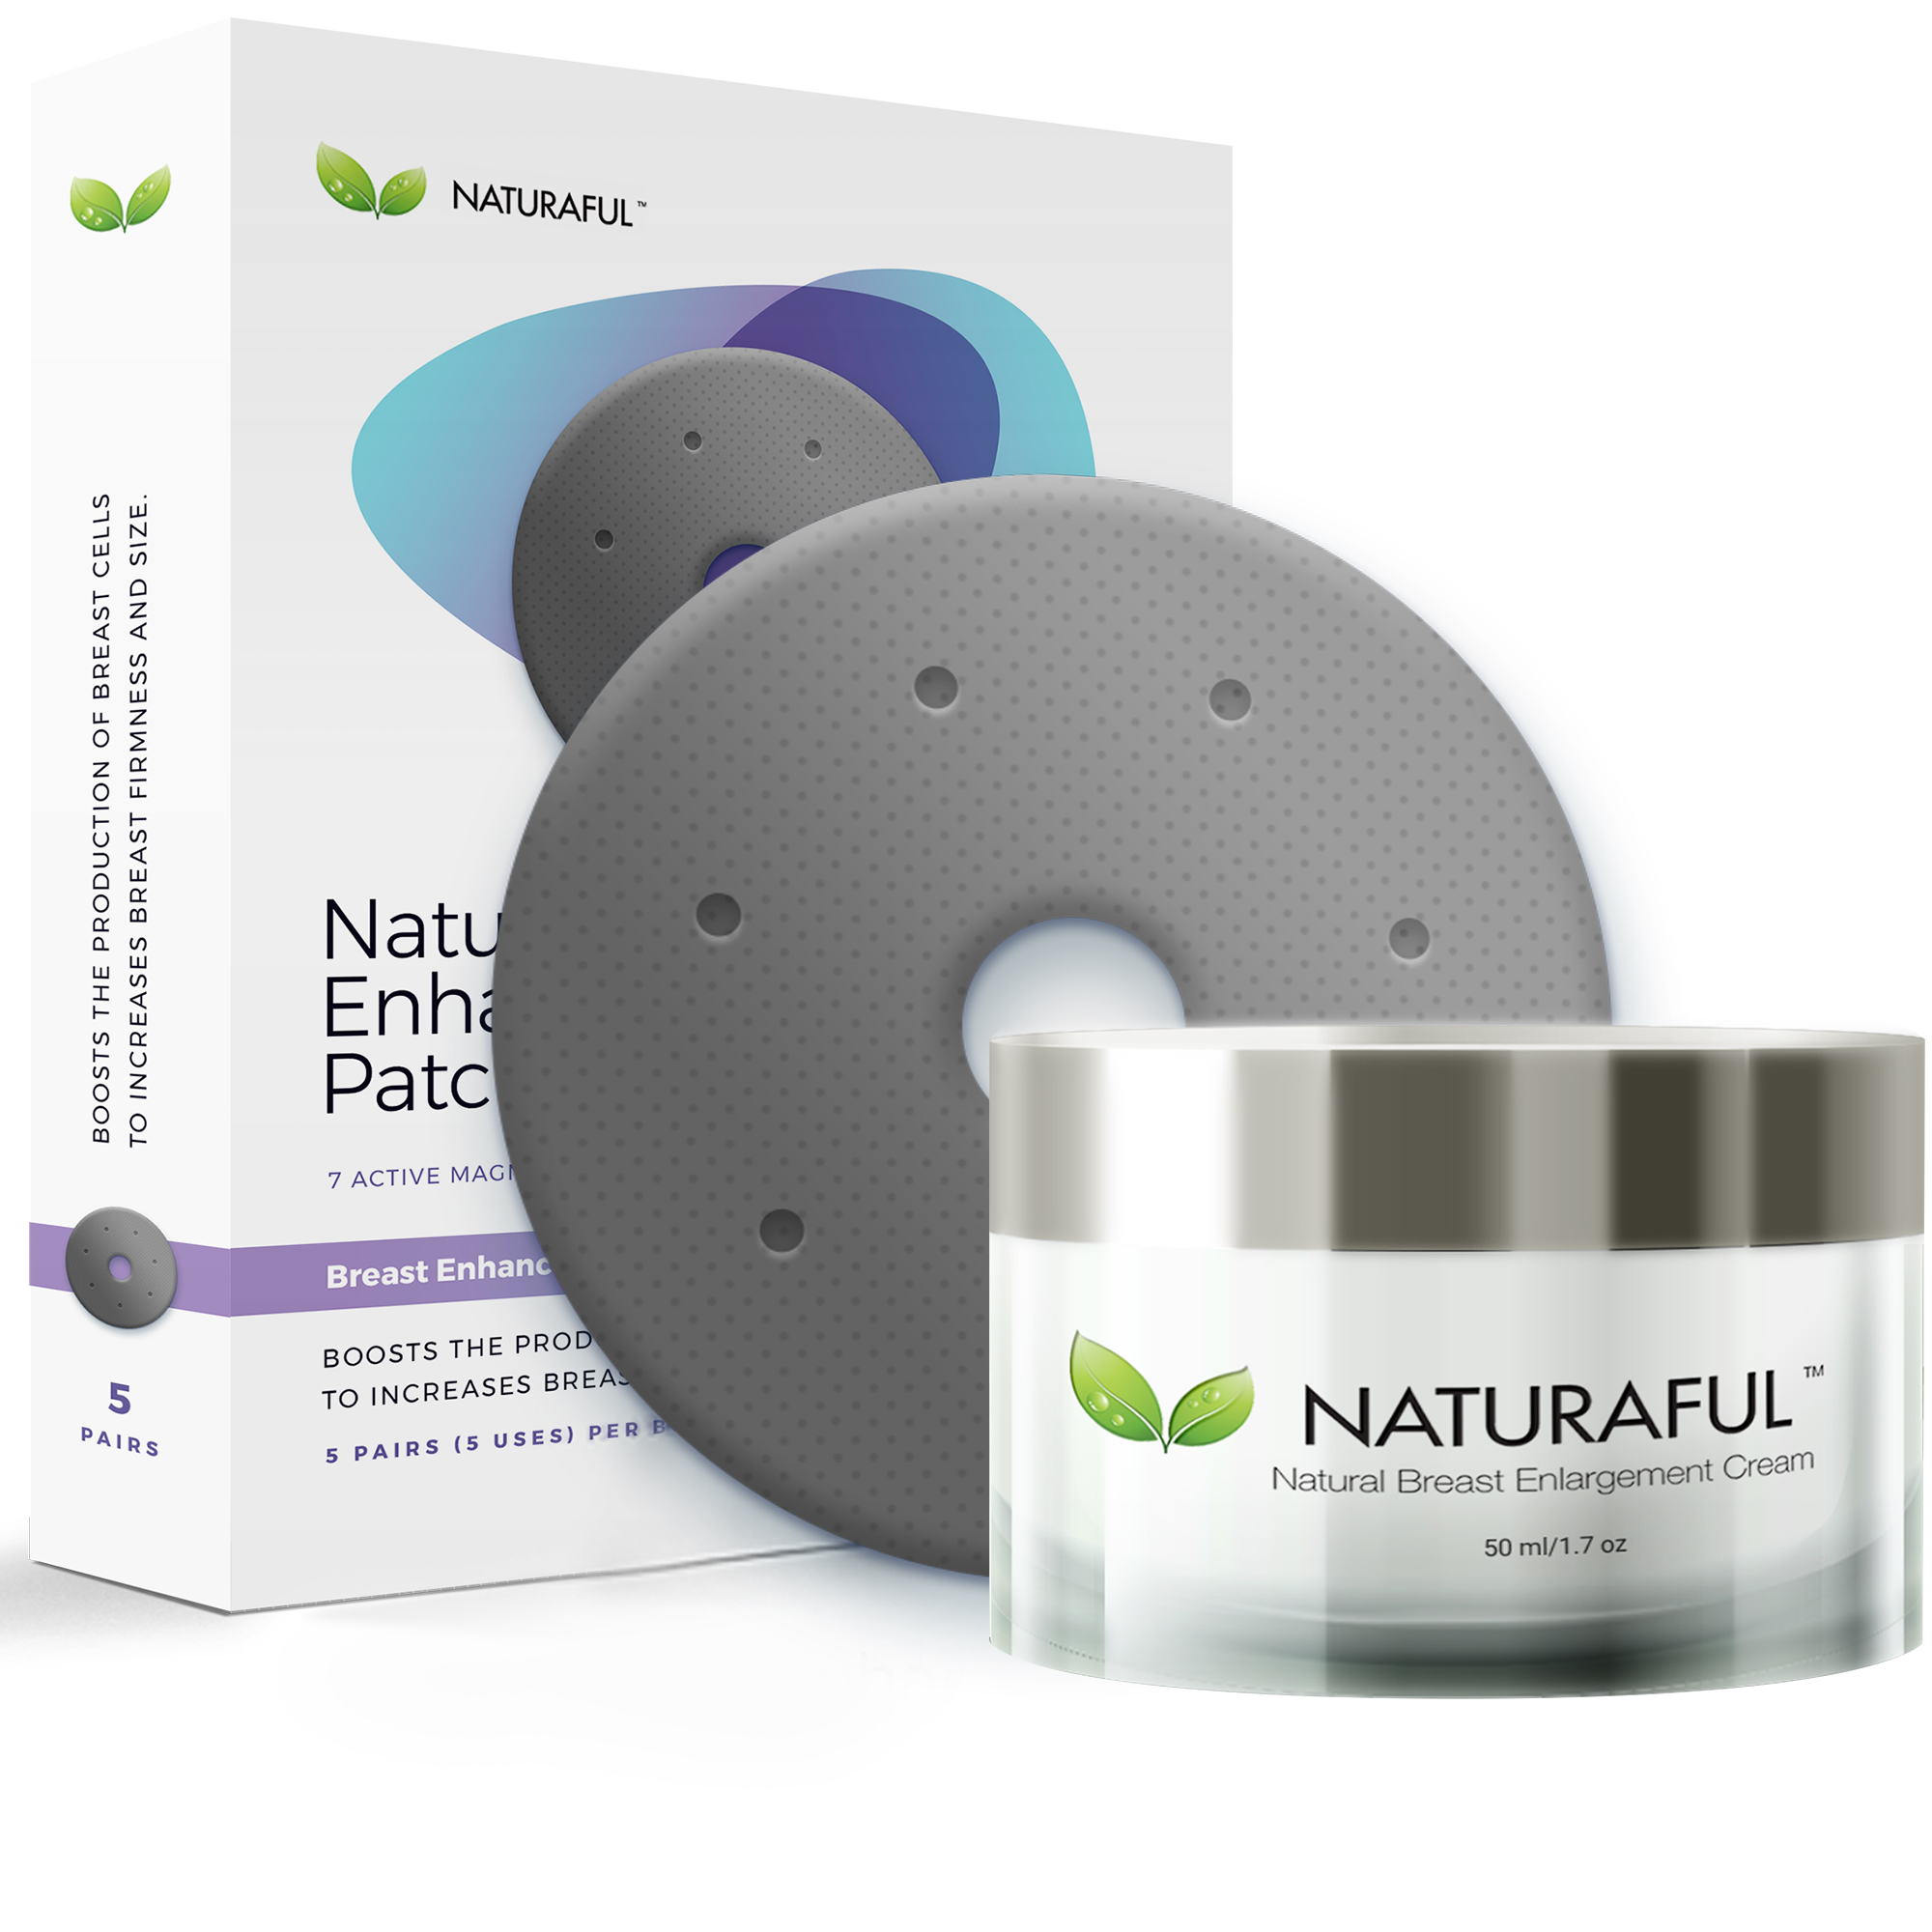 Don't Try Naturaful Without Reading Reviews For This Breast Enlargement  Cream